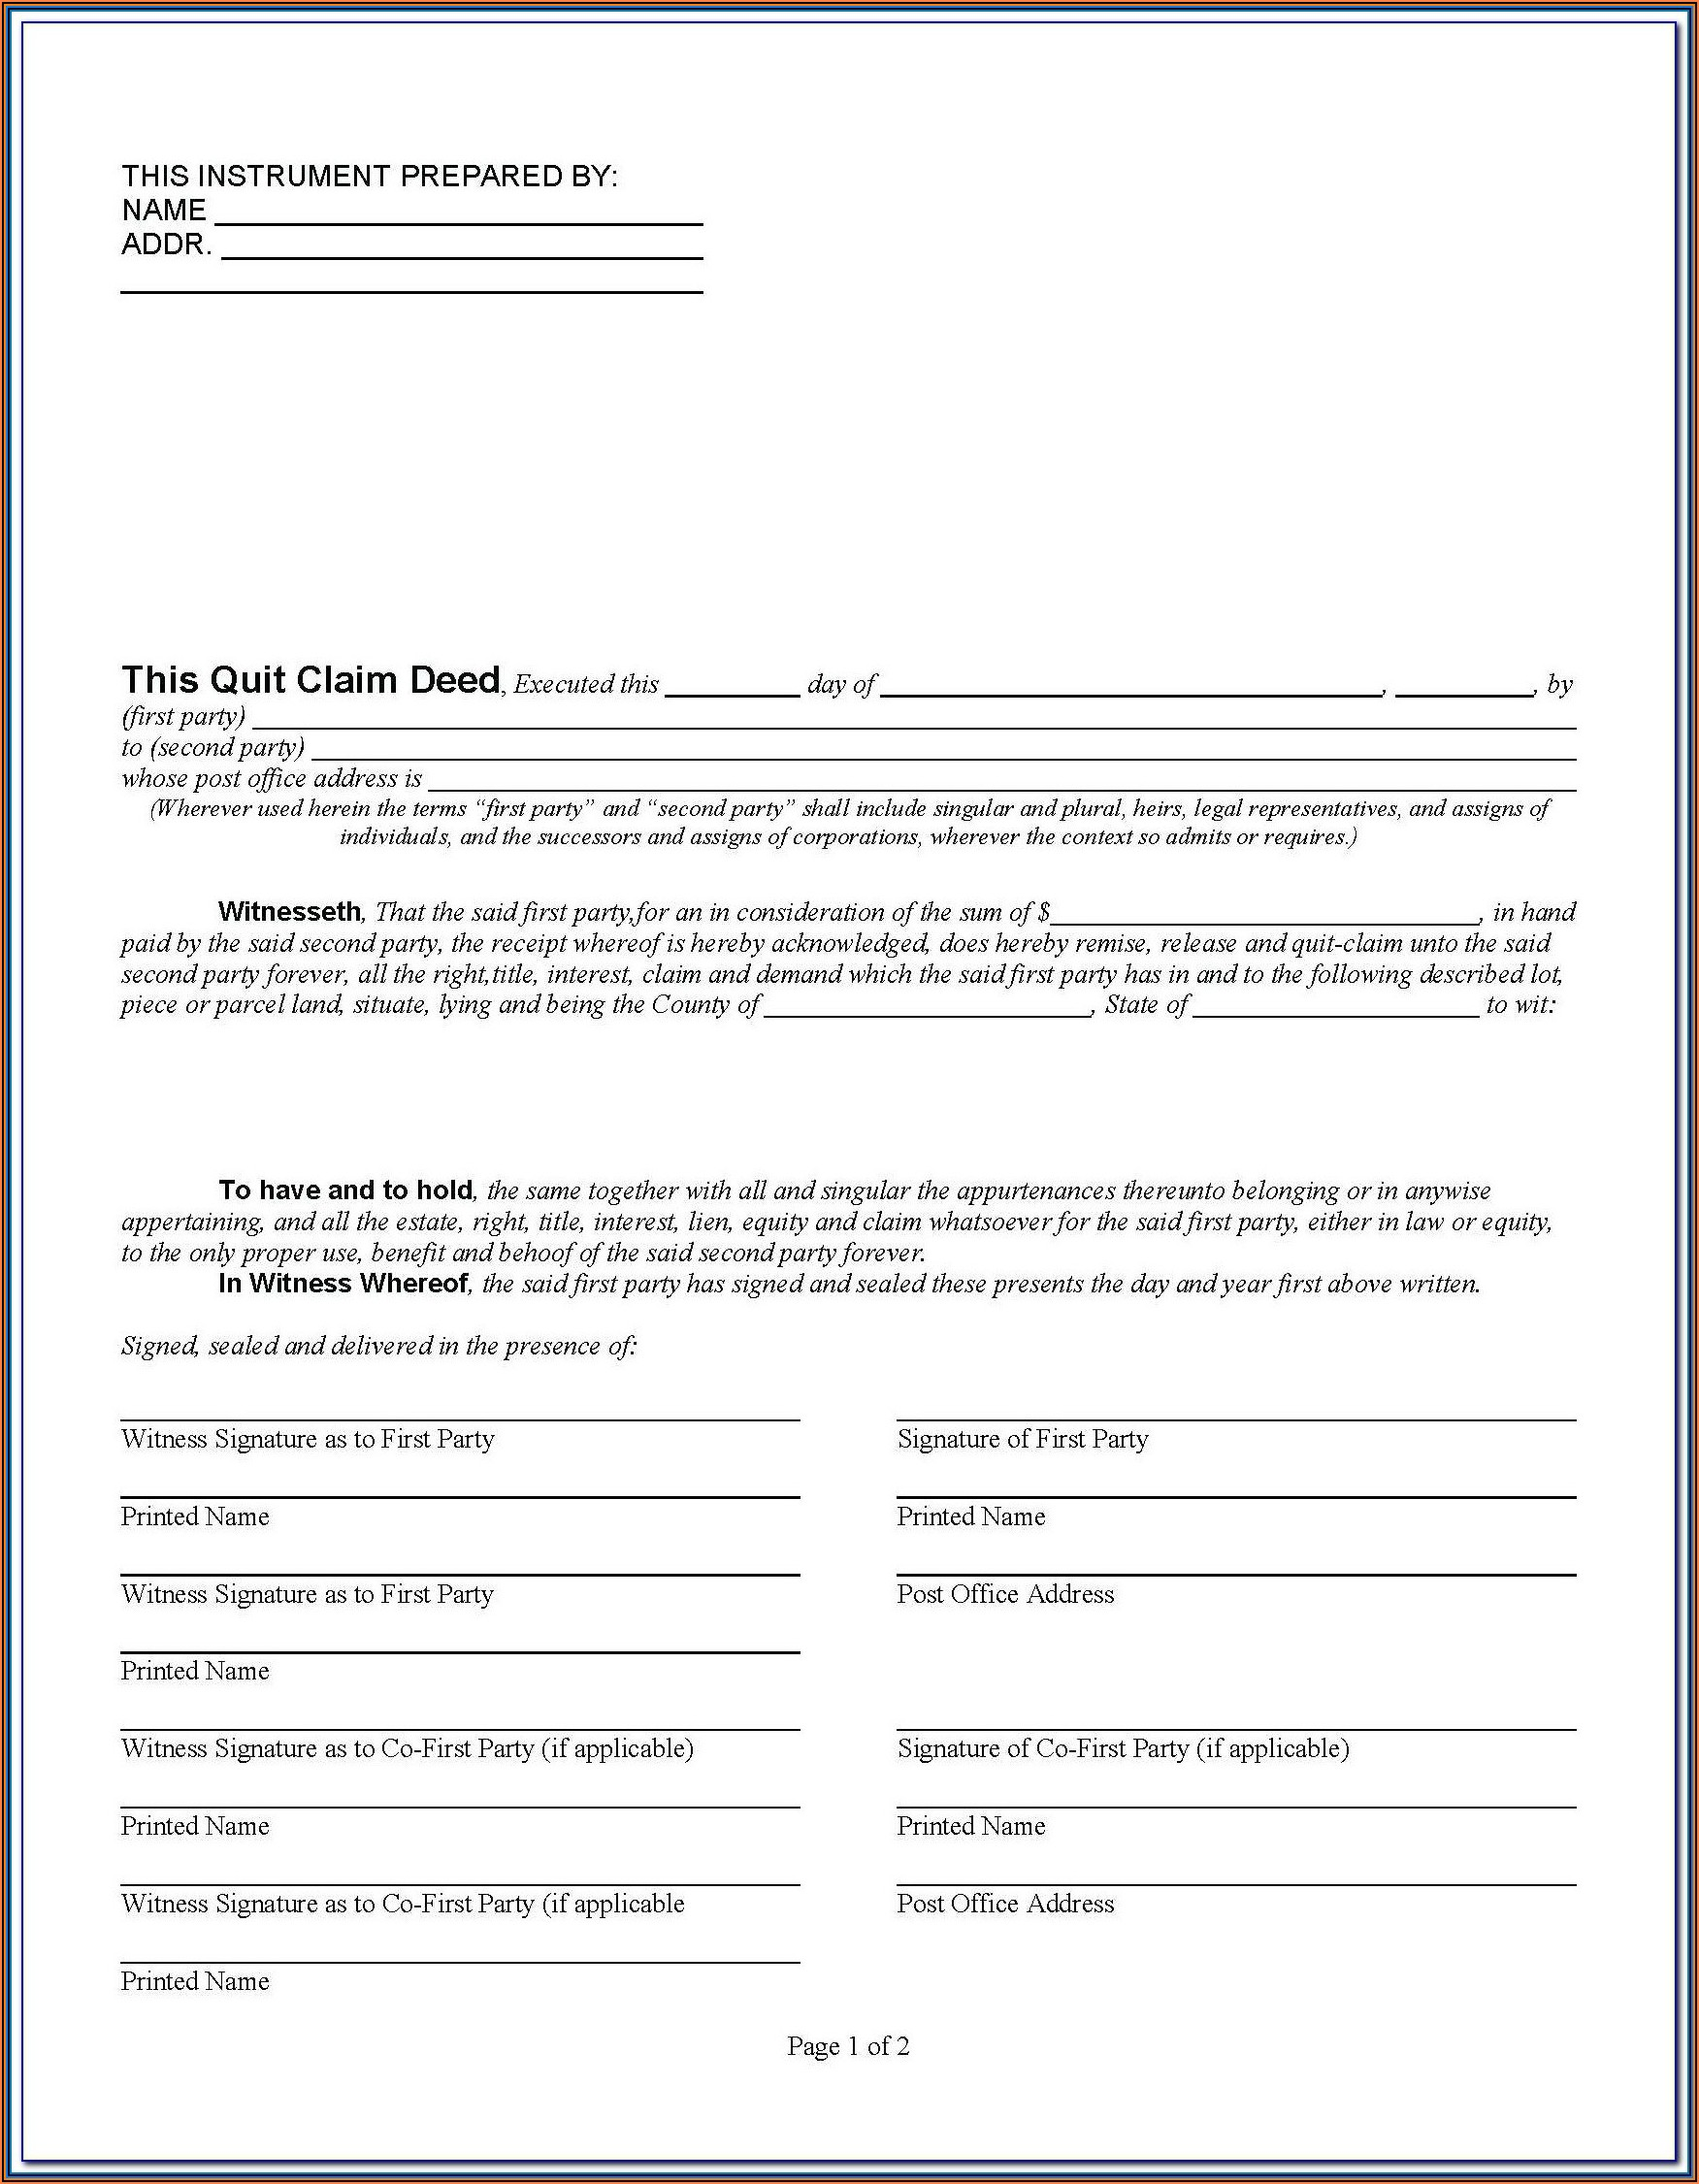 Cms 1500 Claim Form Example